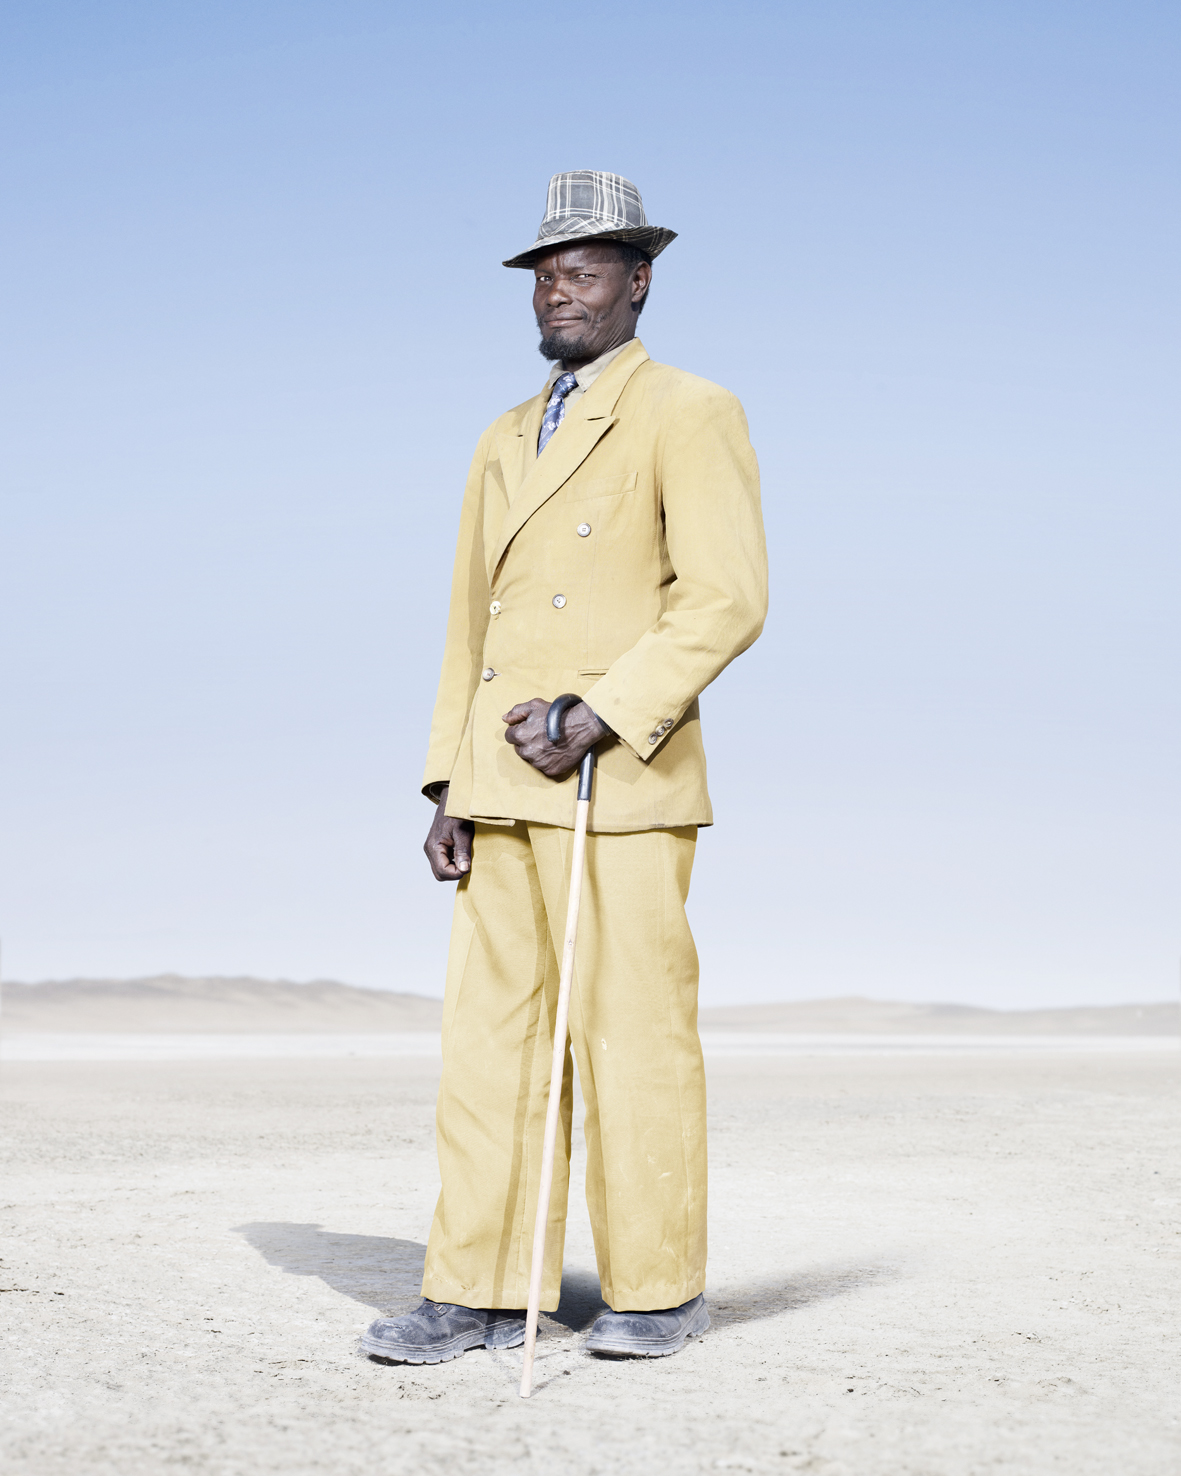 The tradition of wearing formal attire is maintained by most Herero elders, such as this man in a yellow double-breasted suit and check trilby. It is, however, noticeably in decline among younger Herero man, who tend to favor jeans and a t-shirt.